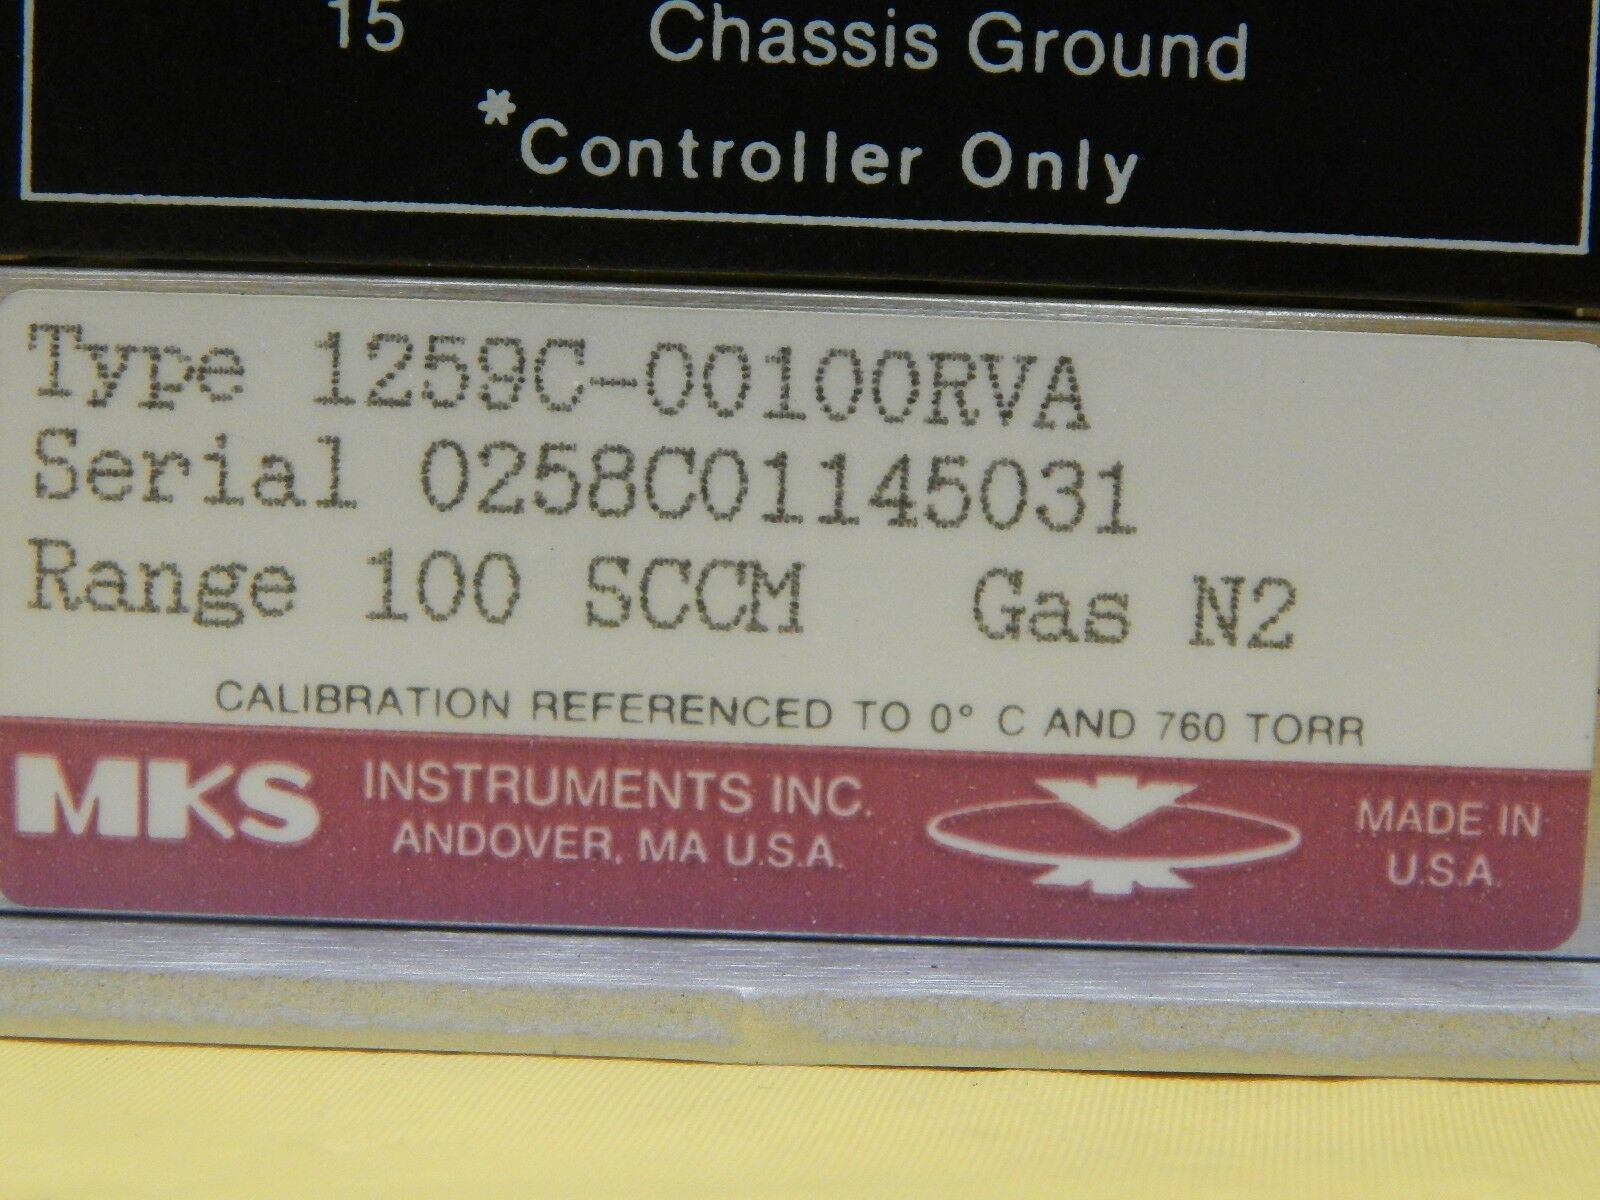 MKS Instruments 1259C-00100RVA Mass Flow Controller Assembly 3E1 81 Used Working